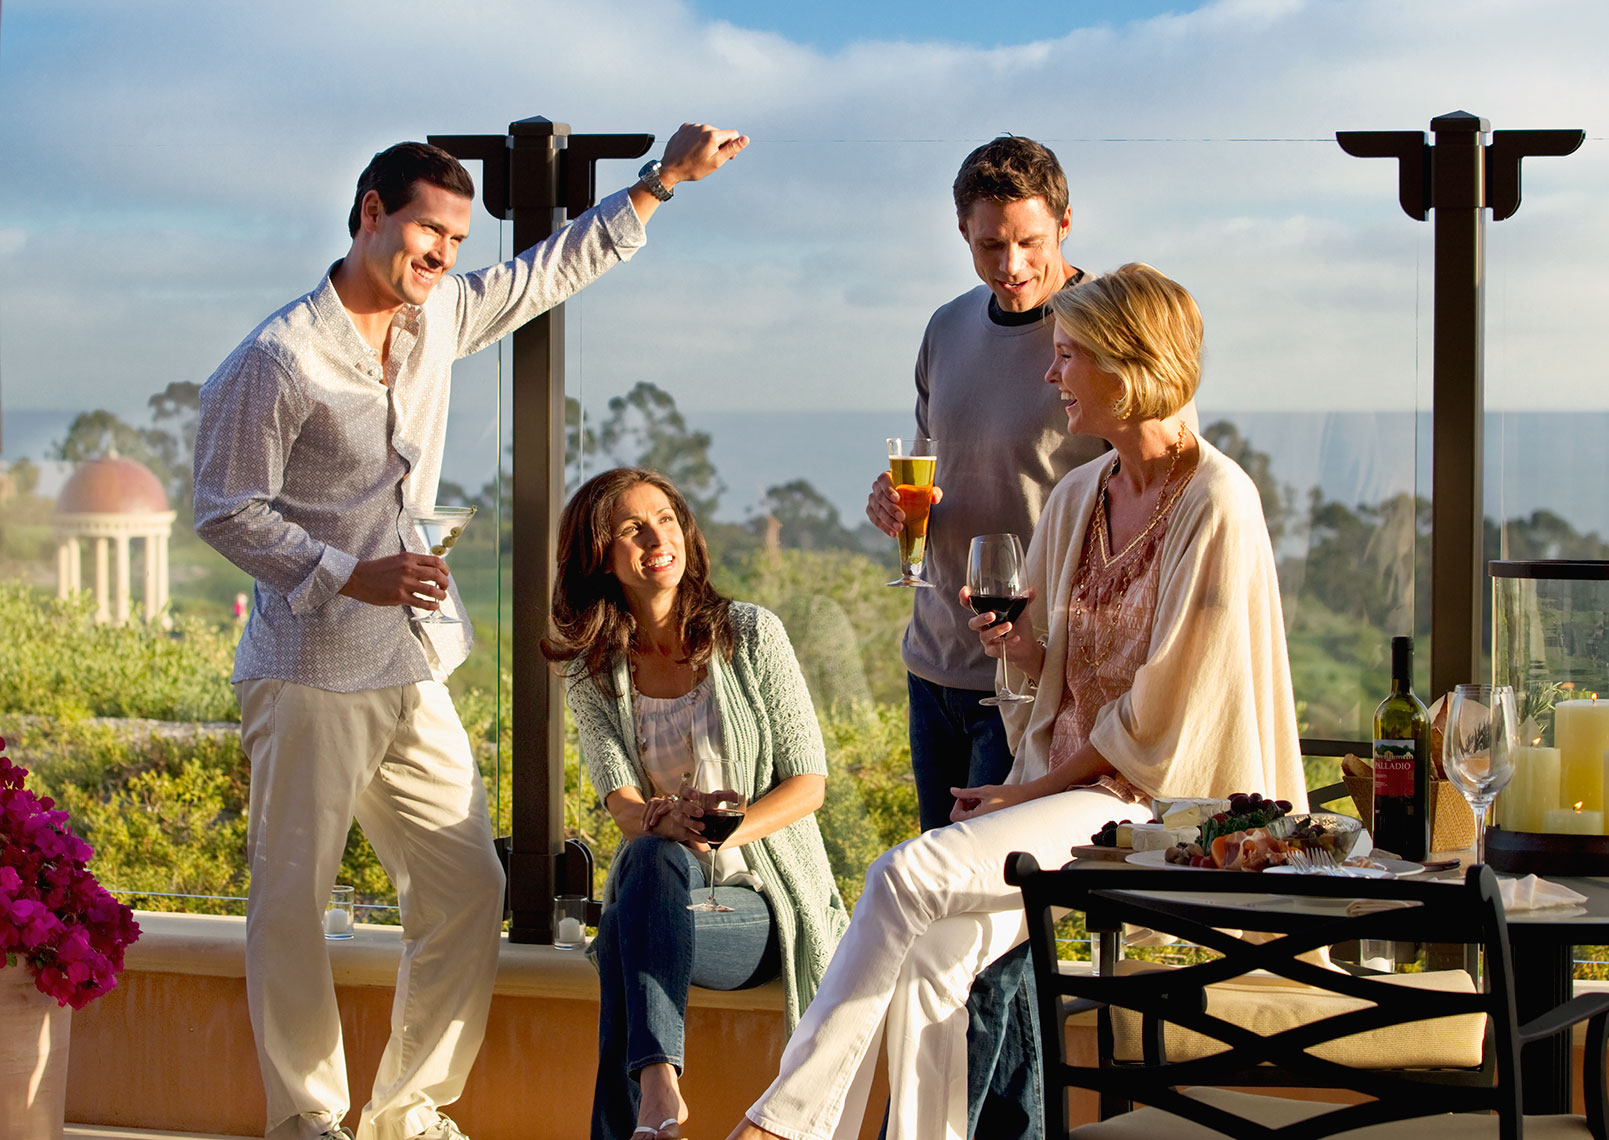 Lifestyle-055-SoCal-hospitality-resort-couples-wine